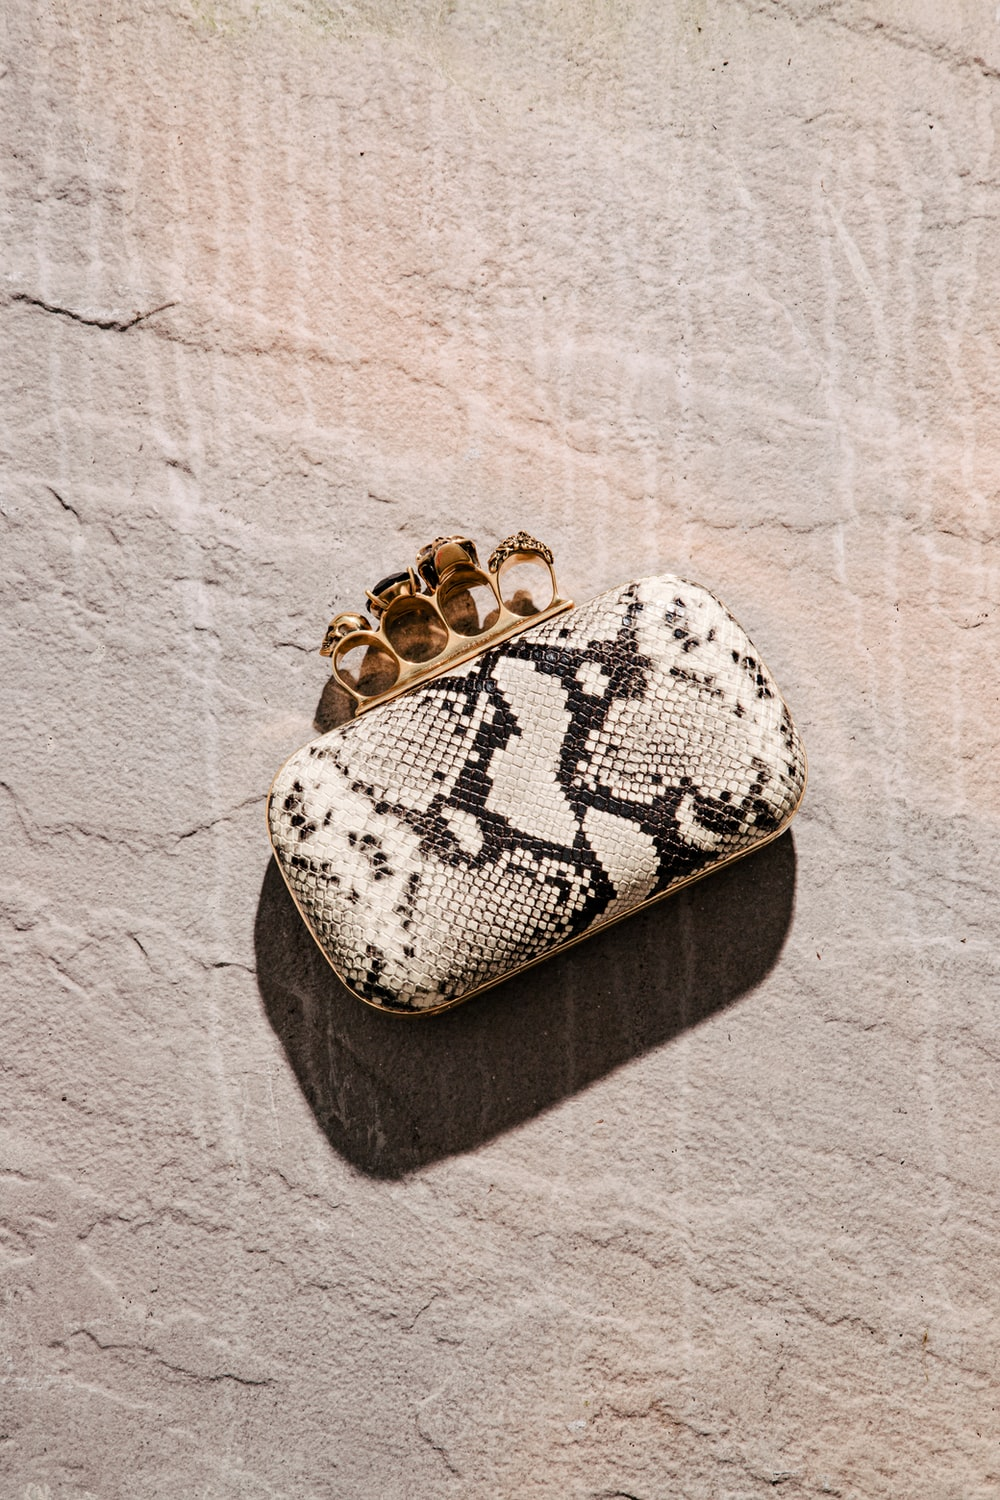 white and black snakeskin leather pouch on gray surface